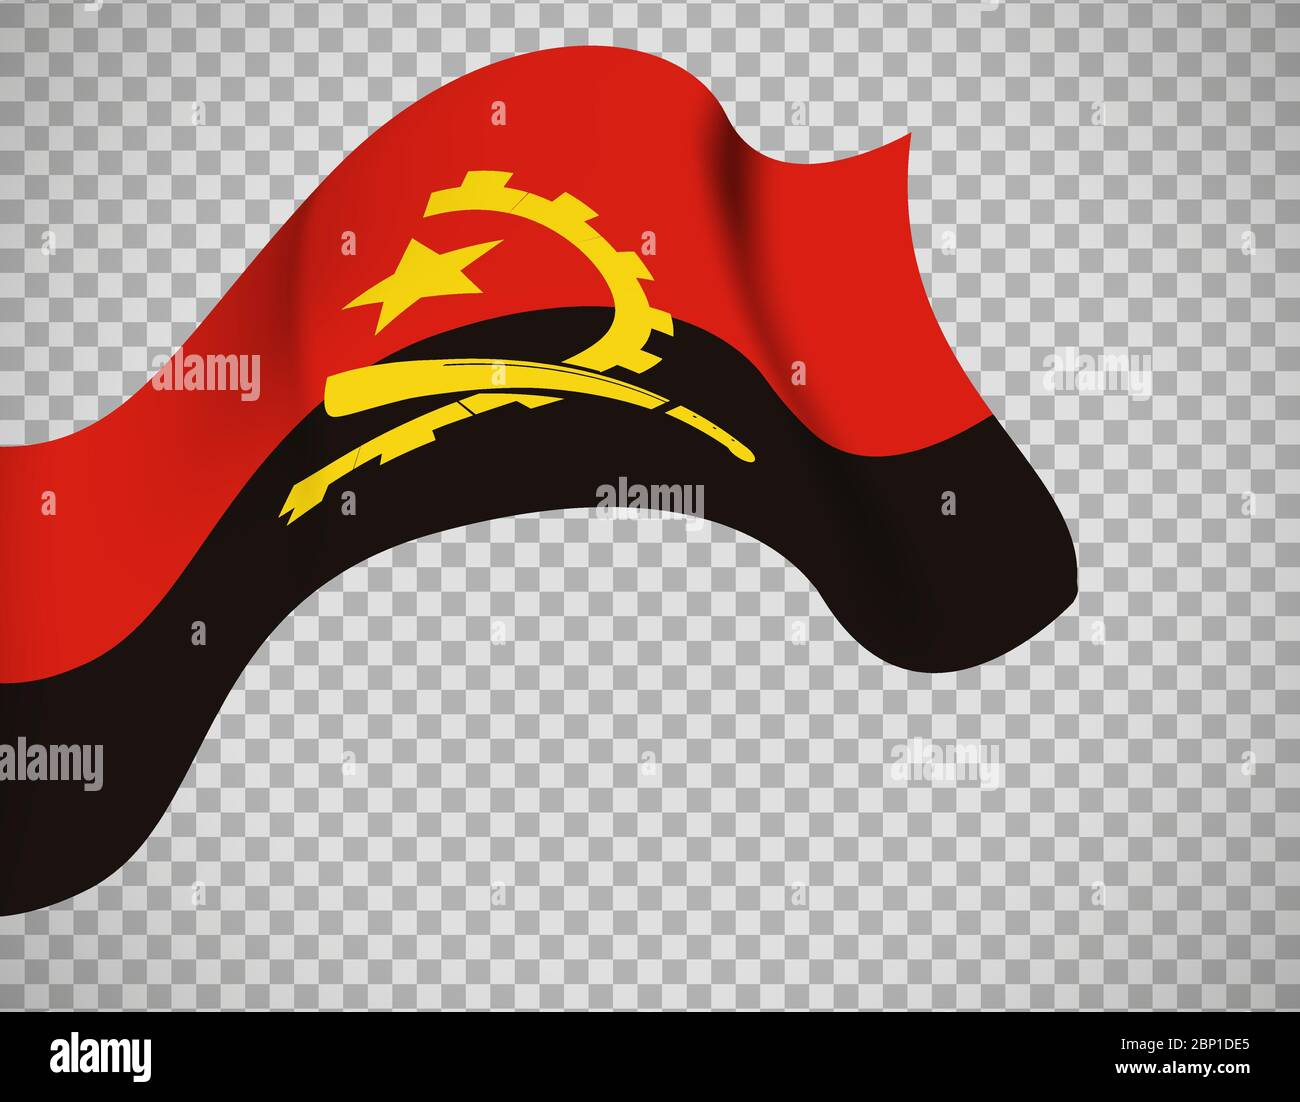 Angola flag icon on transparent background. Vector illustration Stock Vector